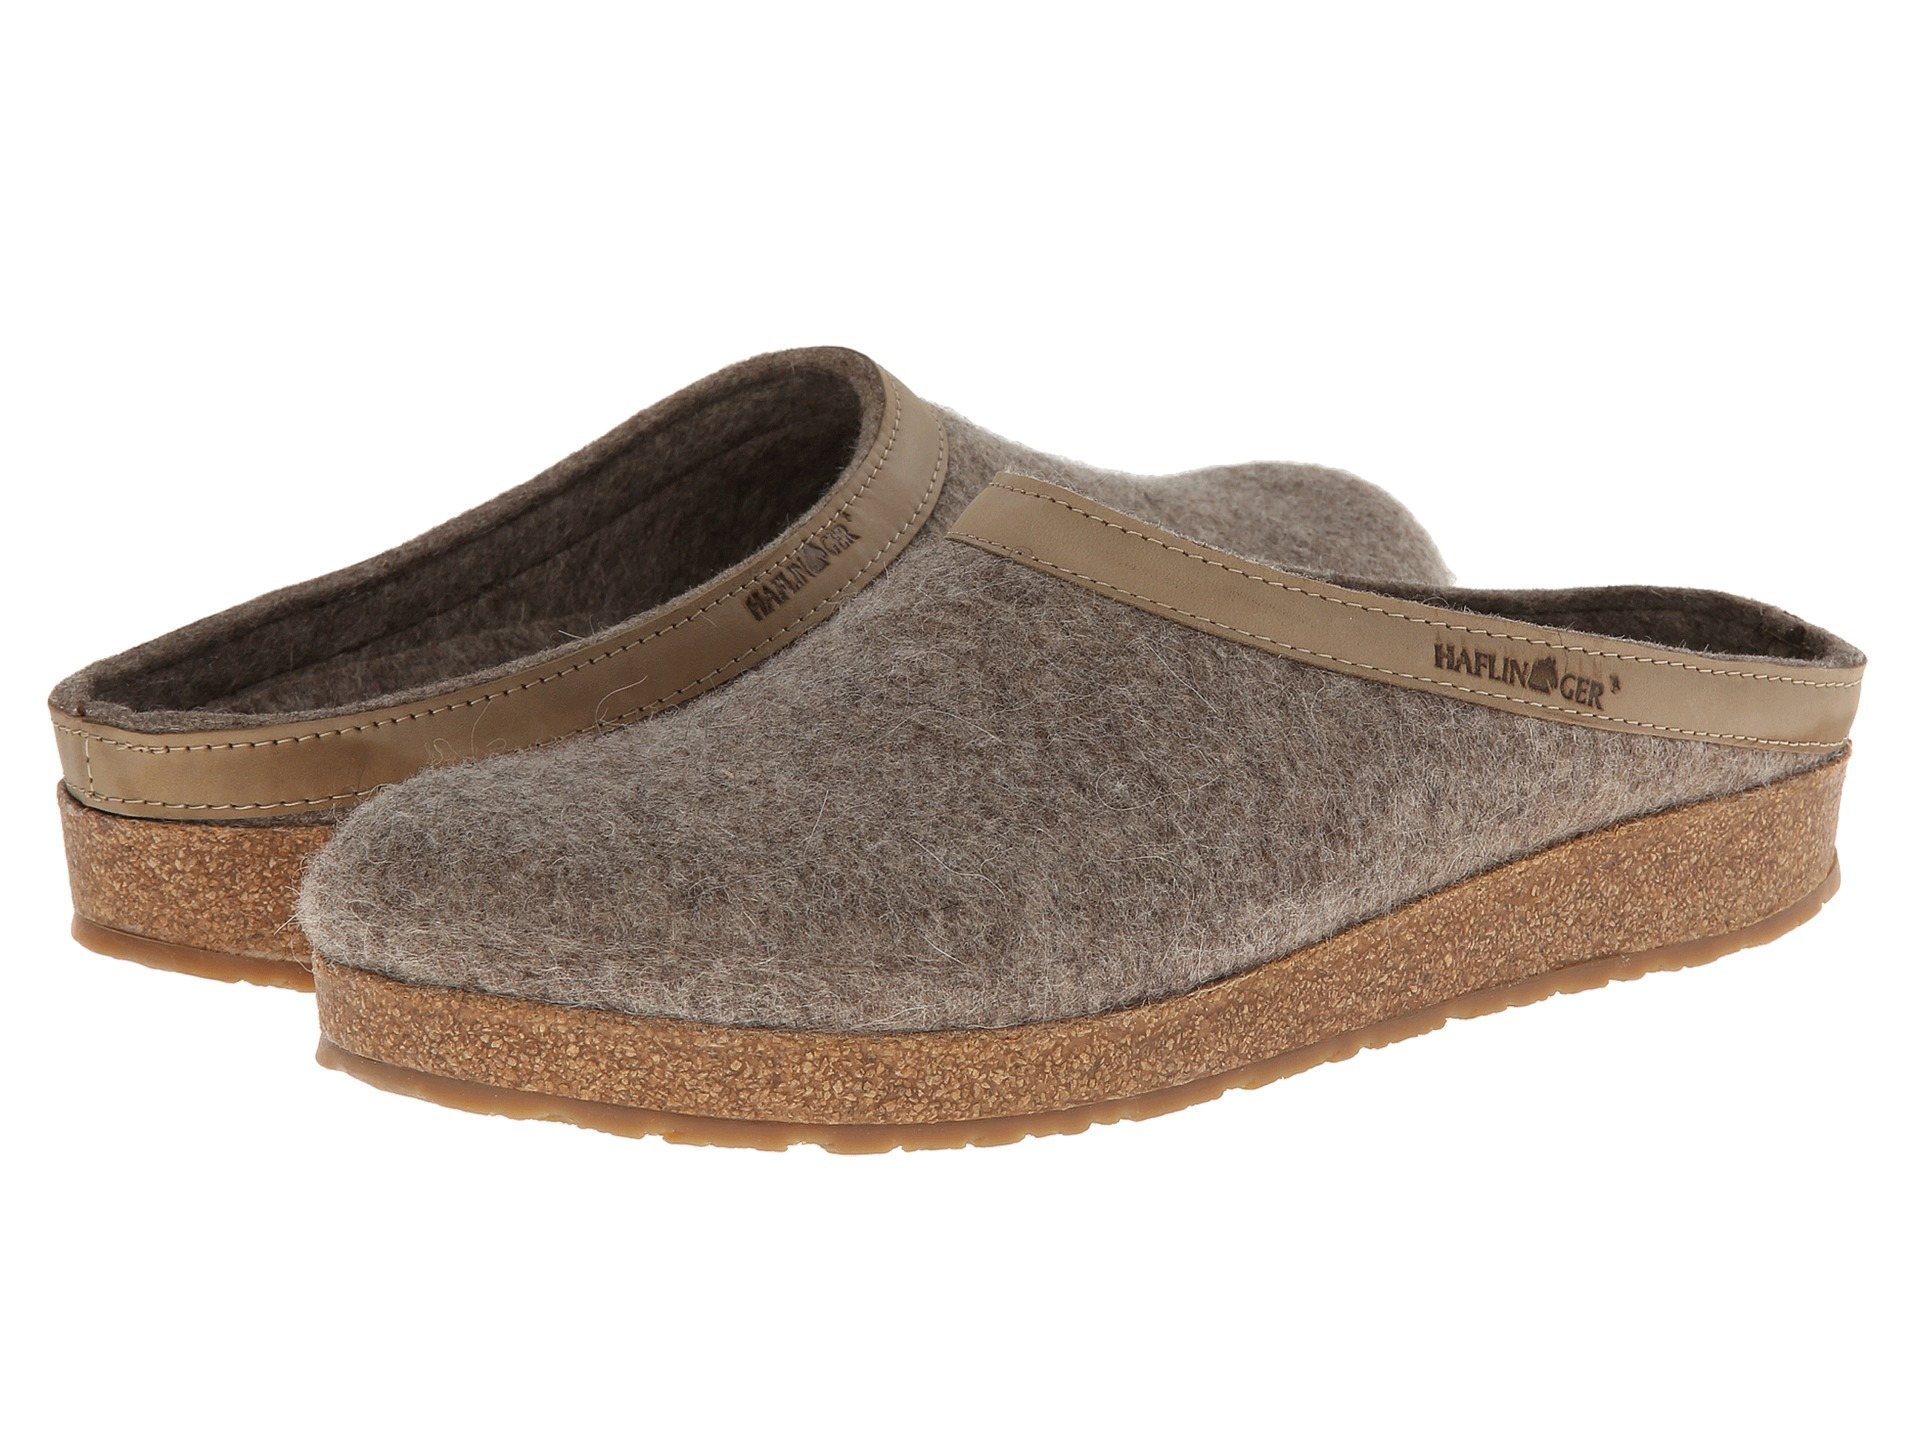 Haflinger GZL Leather Trim Grizzly Earth - Zappos.com Free ...